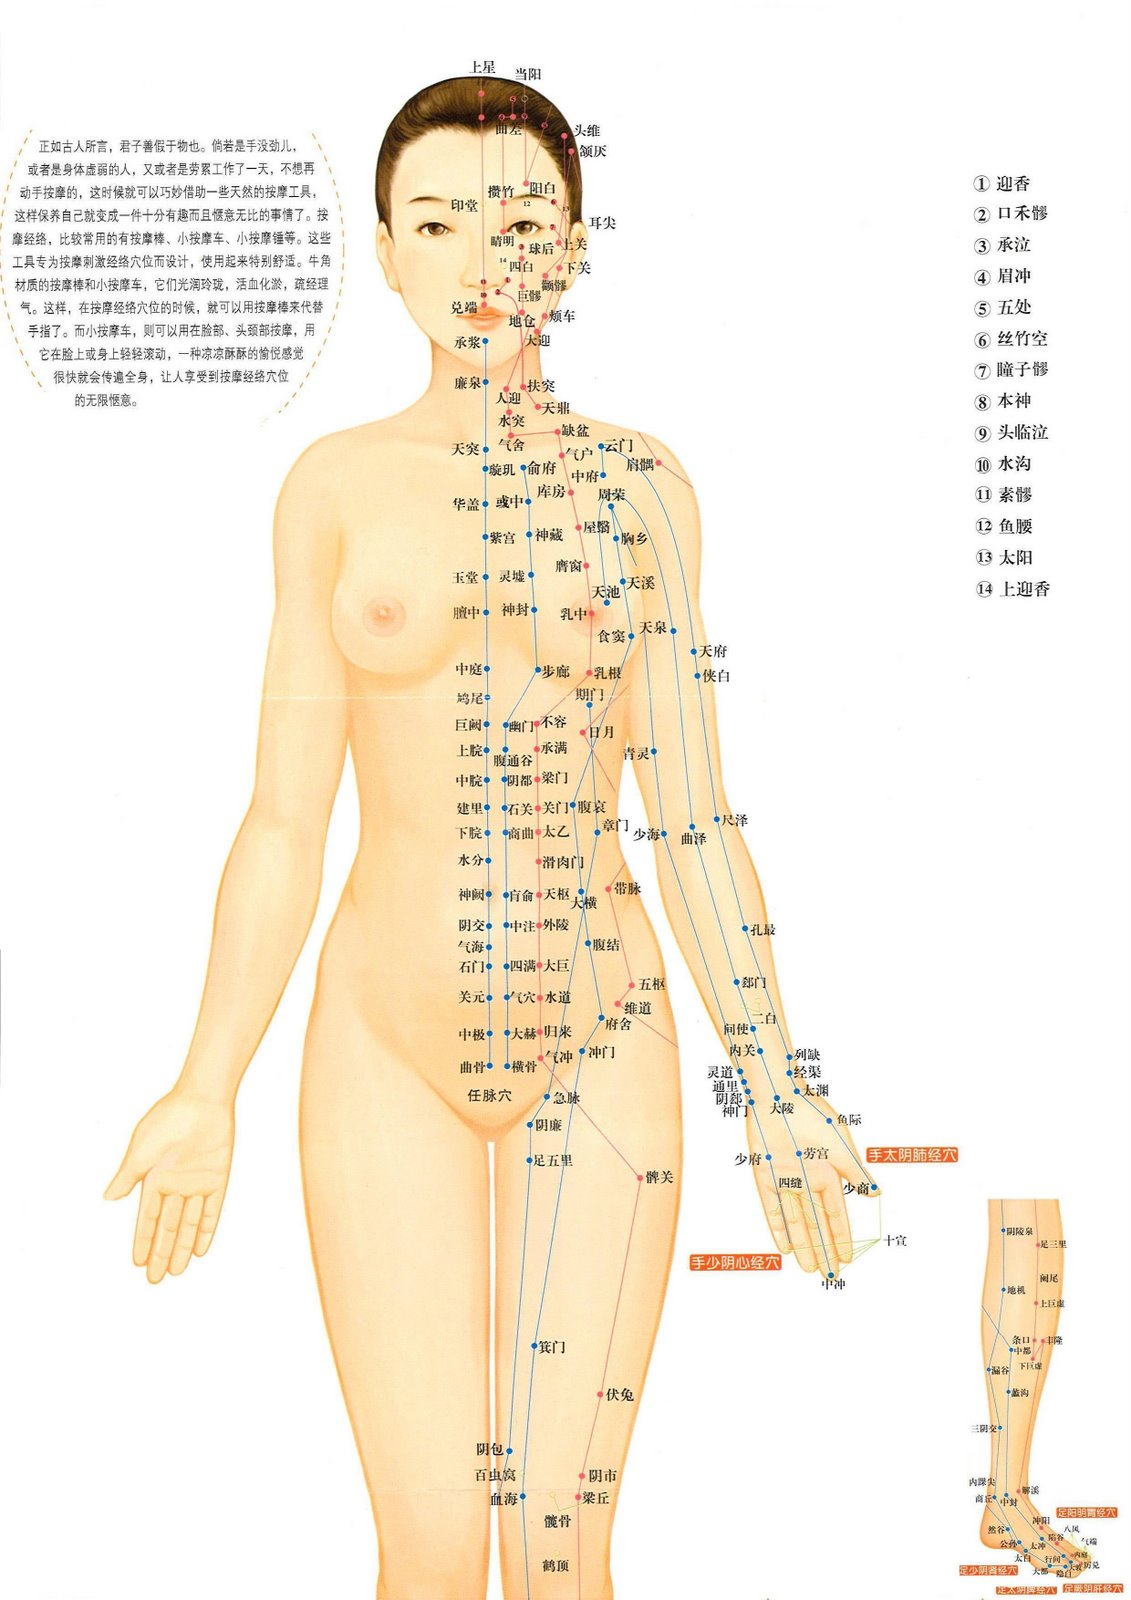 By kulbhushaan raghuvanshi acupuncture for allergies are shown that is safe and effective as  treatment lymphedema also slacker mama page rh tyrellzhhlblog